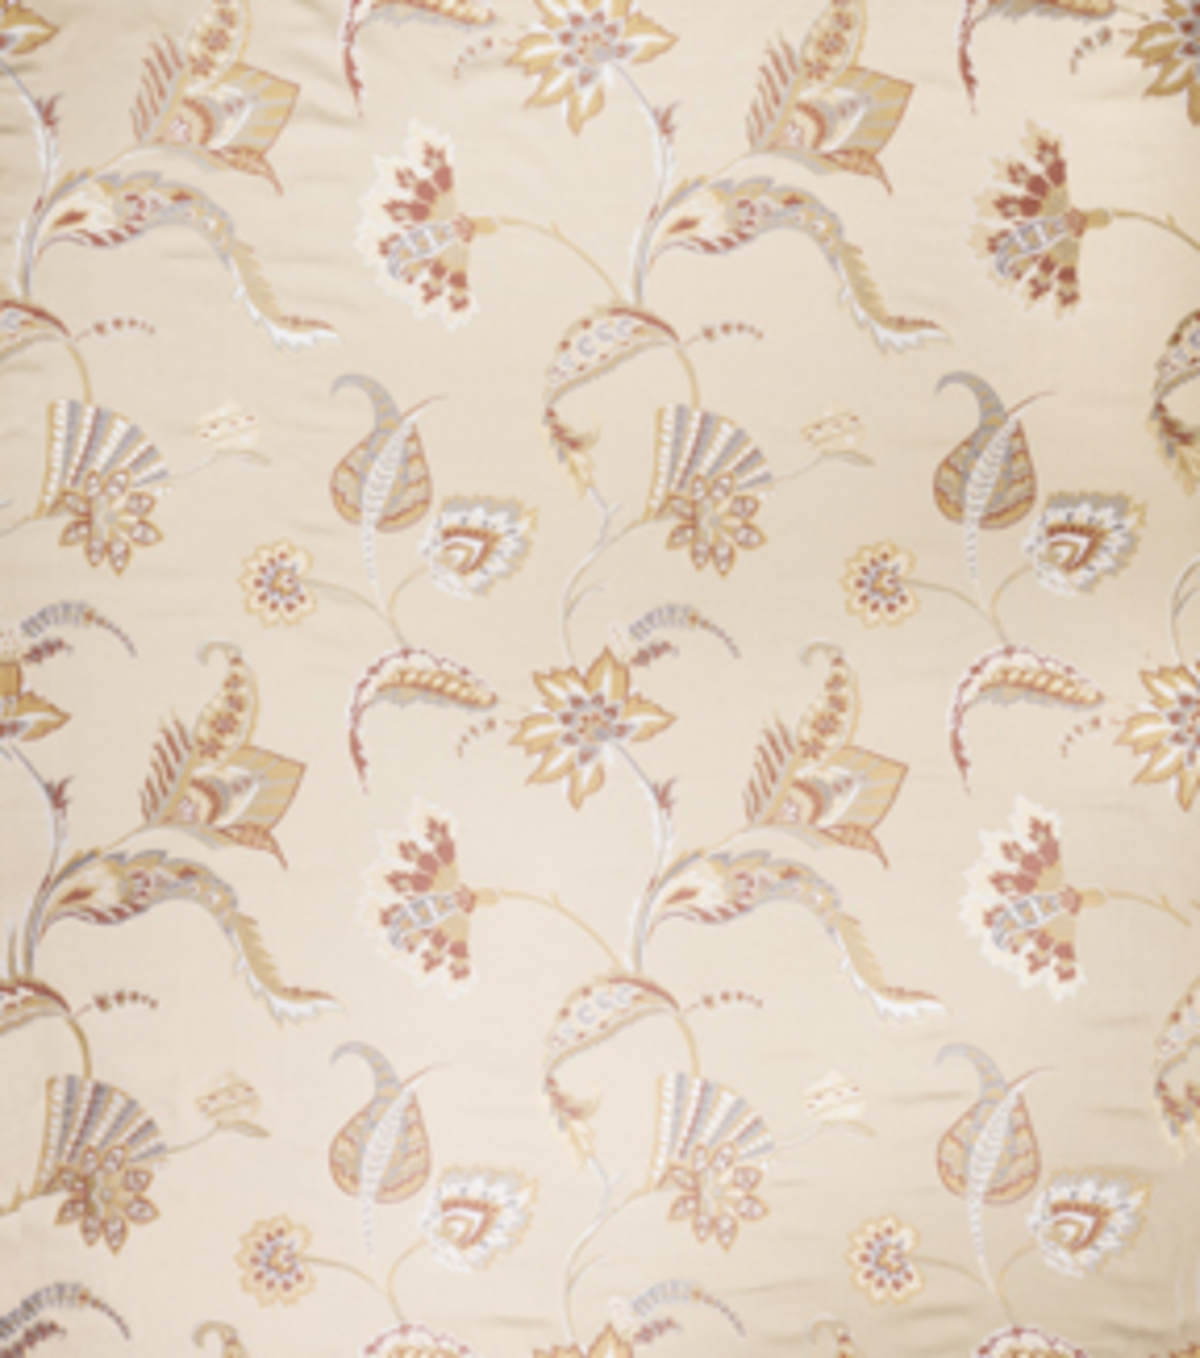 Home Decor 8\u0022x8\u0022 Fabric Swatch-Print Fabric Eaton Square Spellbound Cream